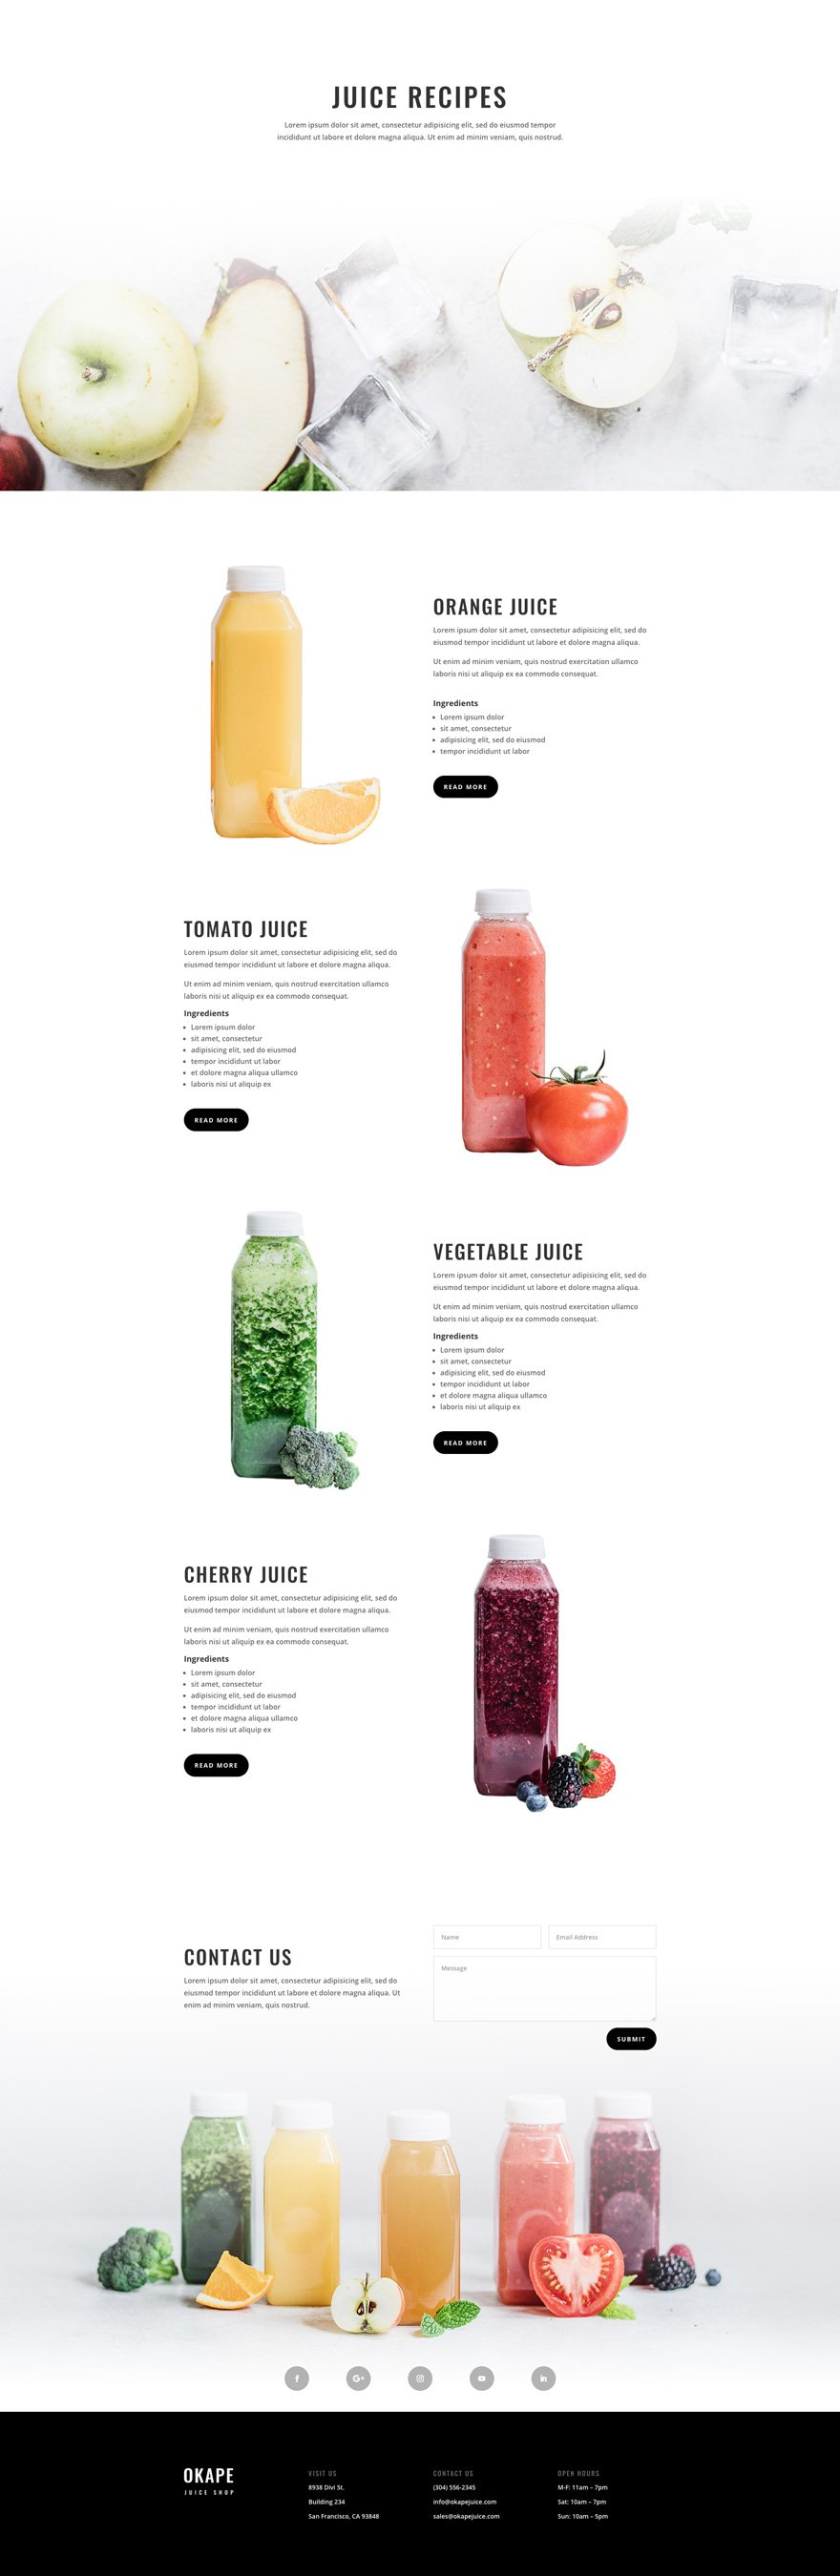 juice shop recipes